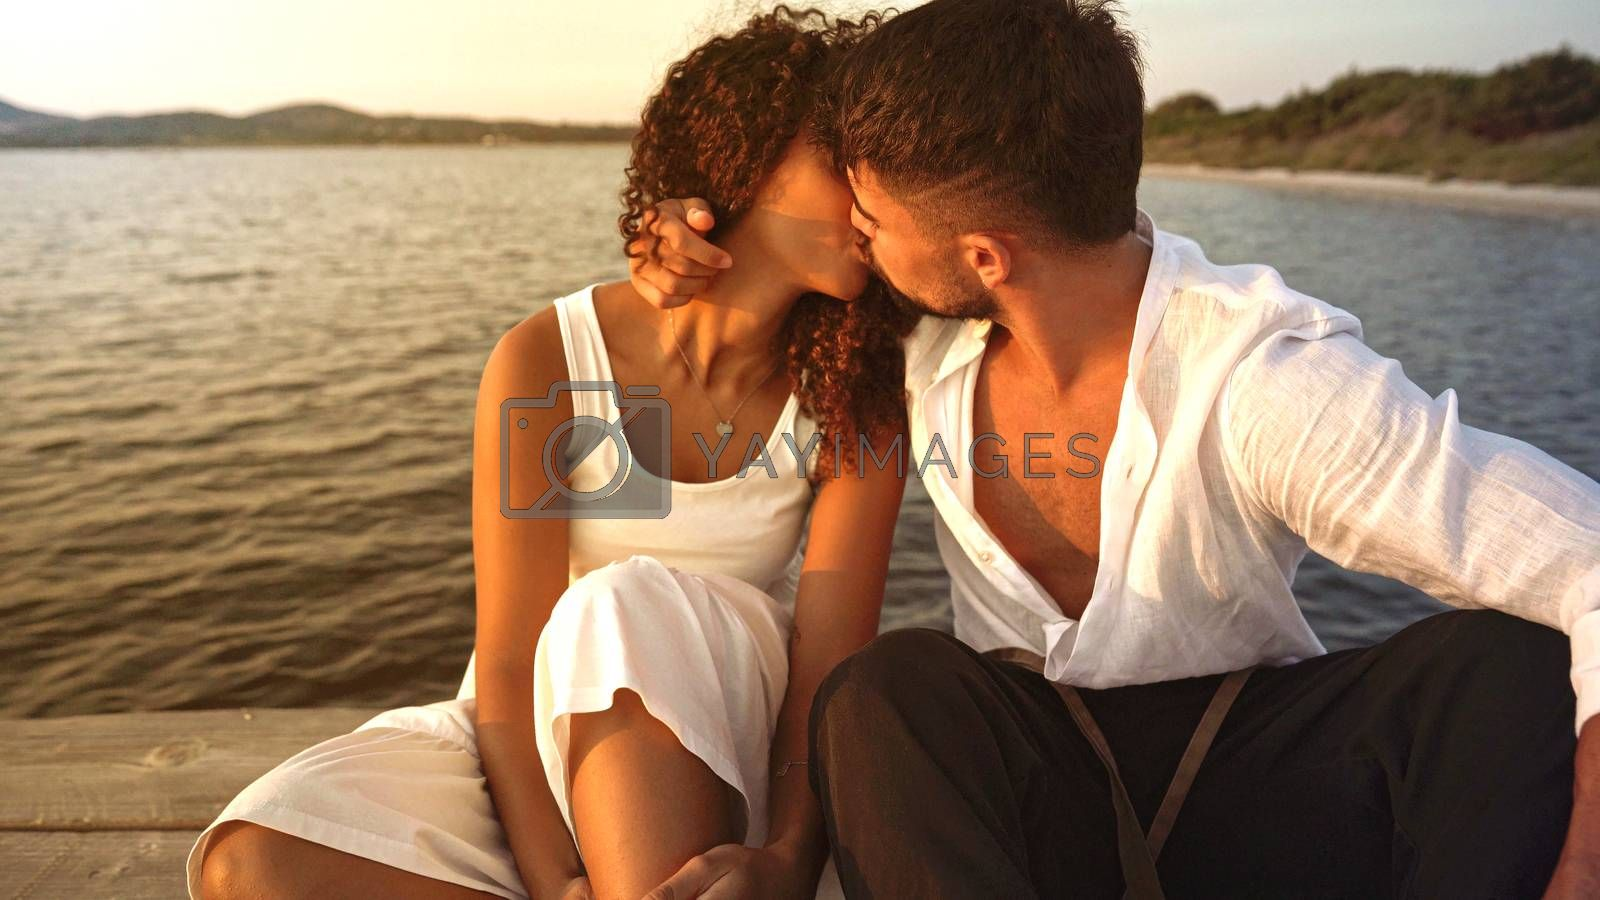 Romance scene of heterosexual mixed race couple of lovers kissing with passion on a wooden pier at sunset - Romantic handsome stylish young man flirting embracing her Hispanic curly girlfriend